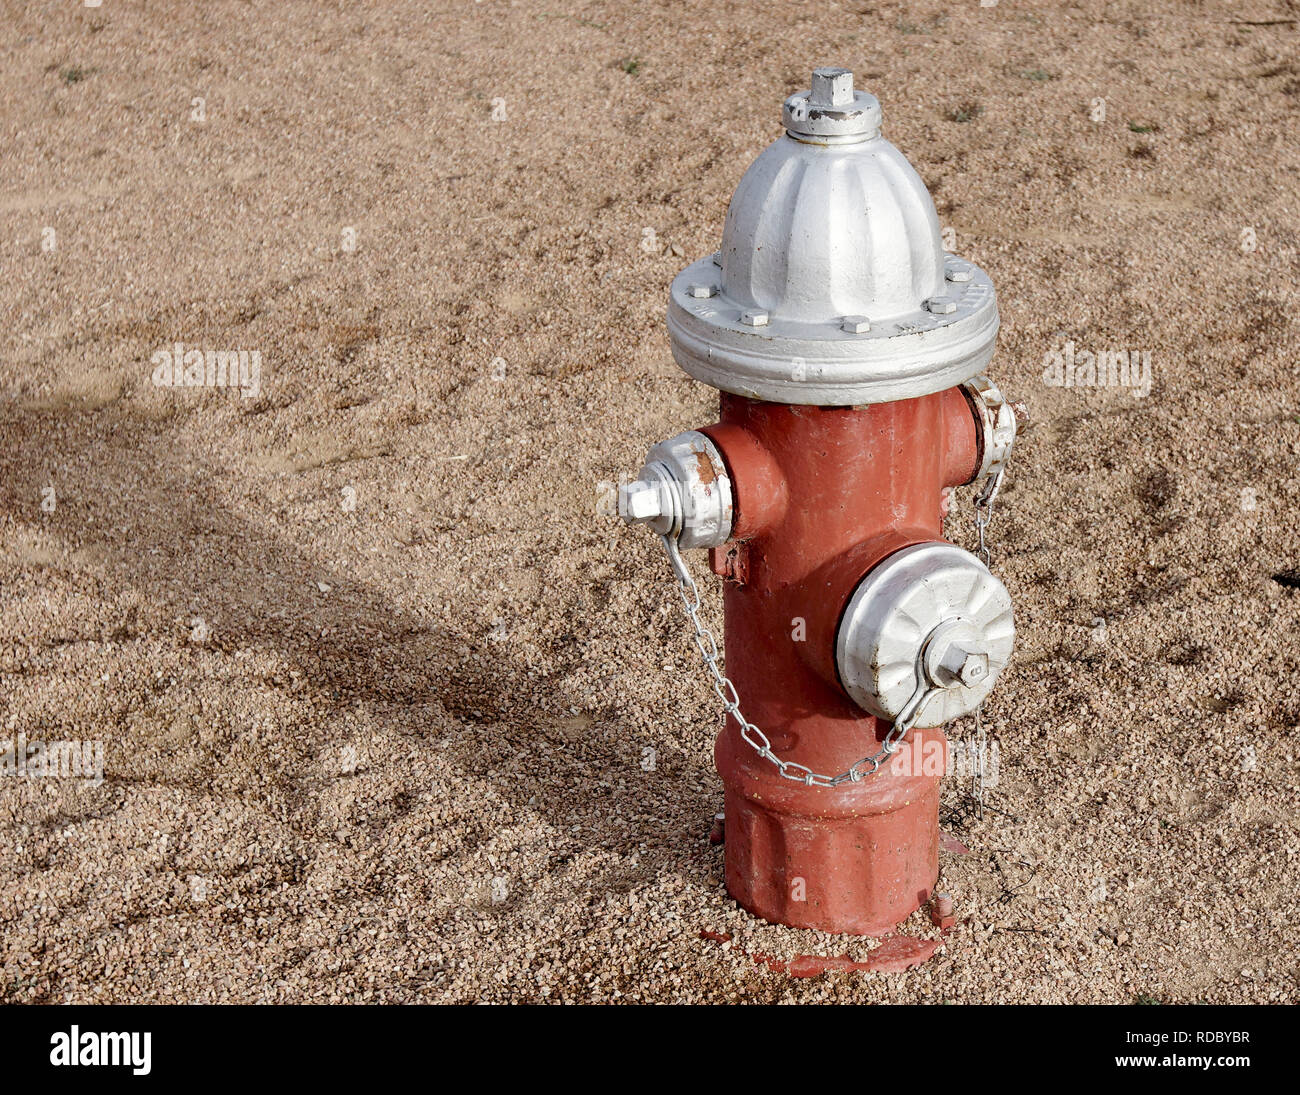 Fire hydrant in Alpine, Texas - Stock Image